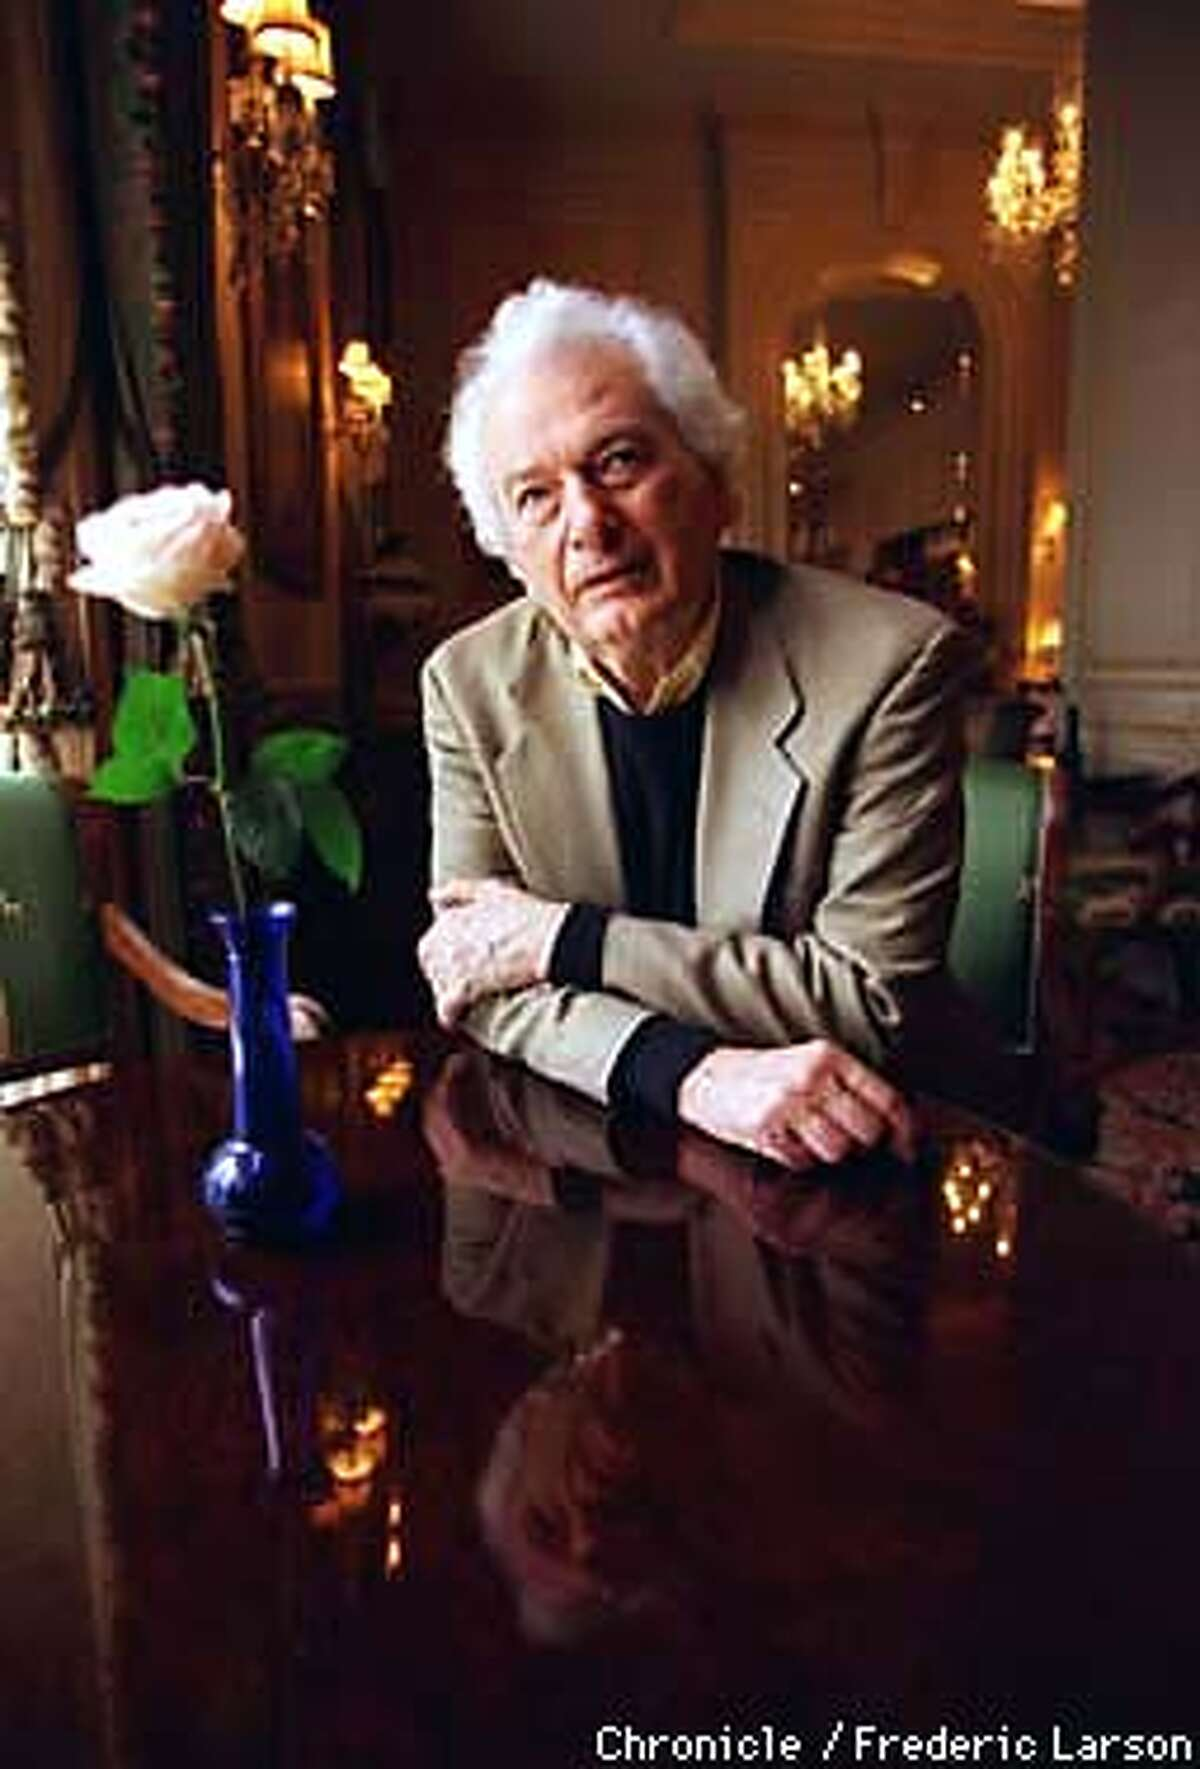 """HELLER/C/17FEB98/DD/FRL: Joseph Heller, auther of """"Catch 22"""" has a new book out called """"Now and Then."""" Chronicle photo by Frederic Larson"""